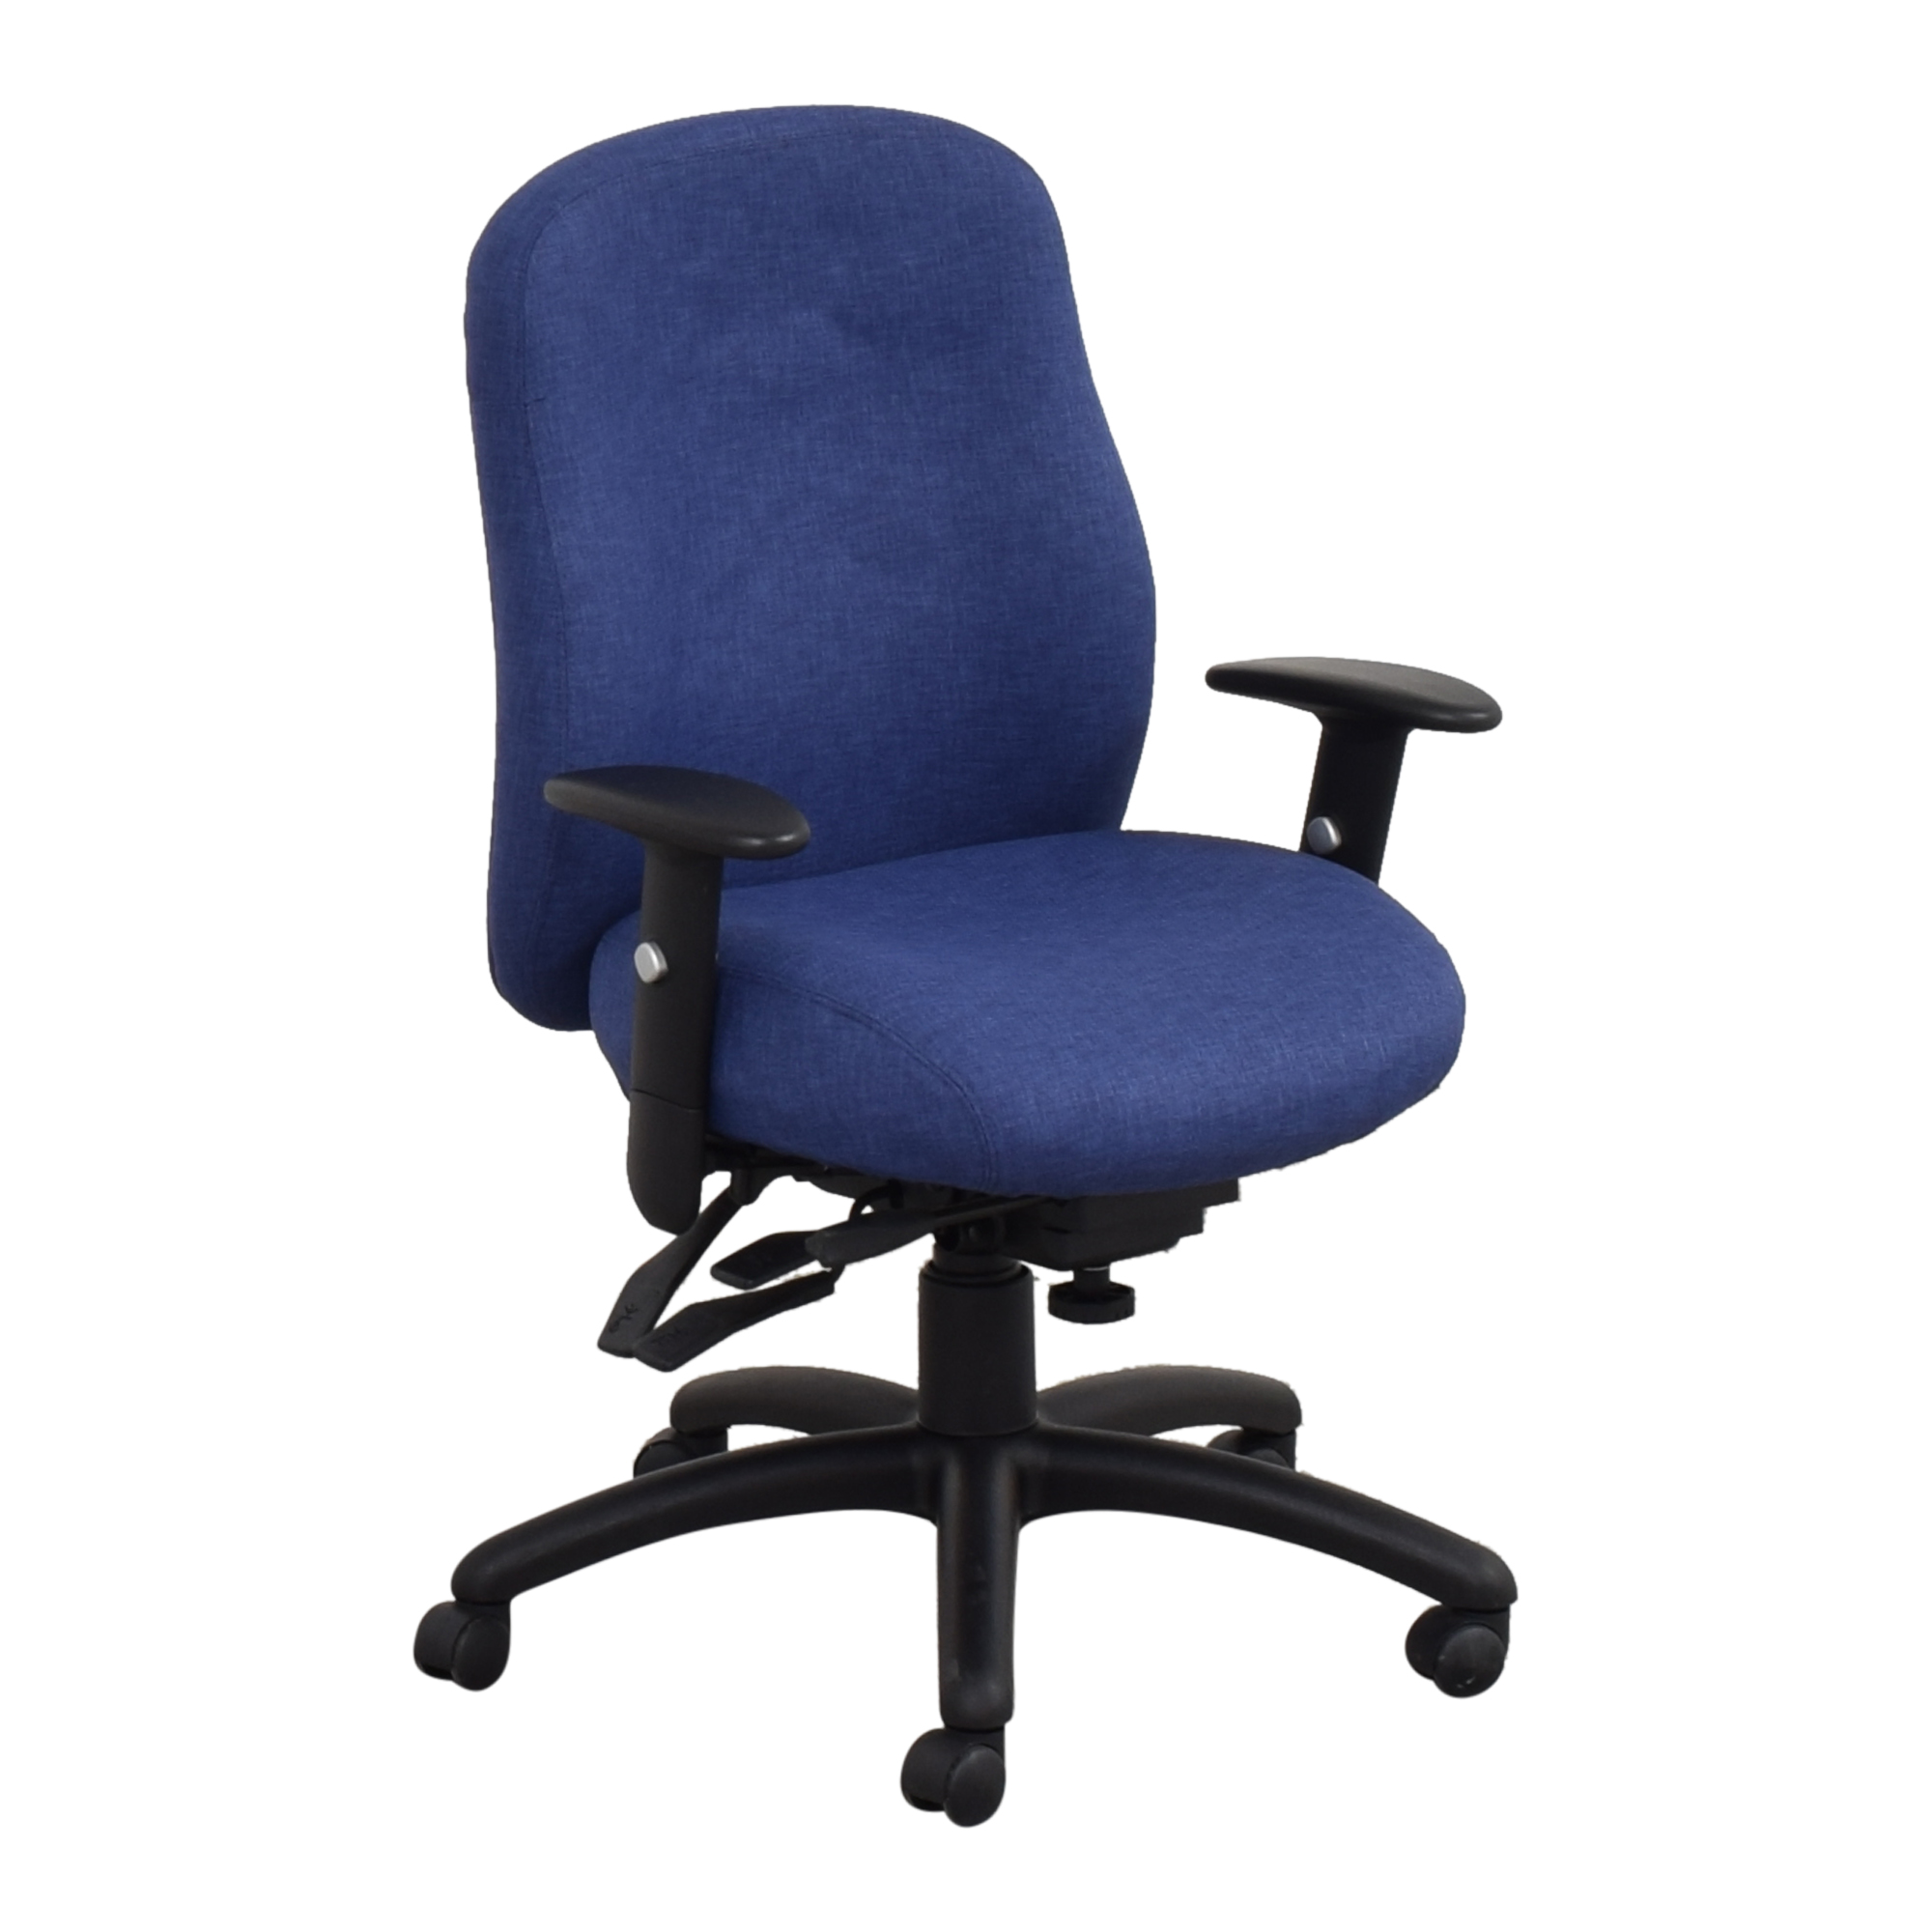 Offices to Go Offices to Go Multi-Function Desk Chair coupon